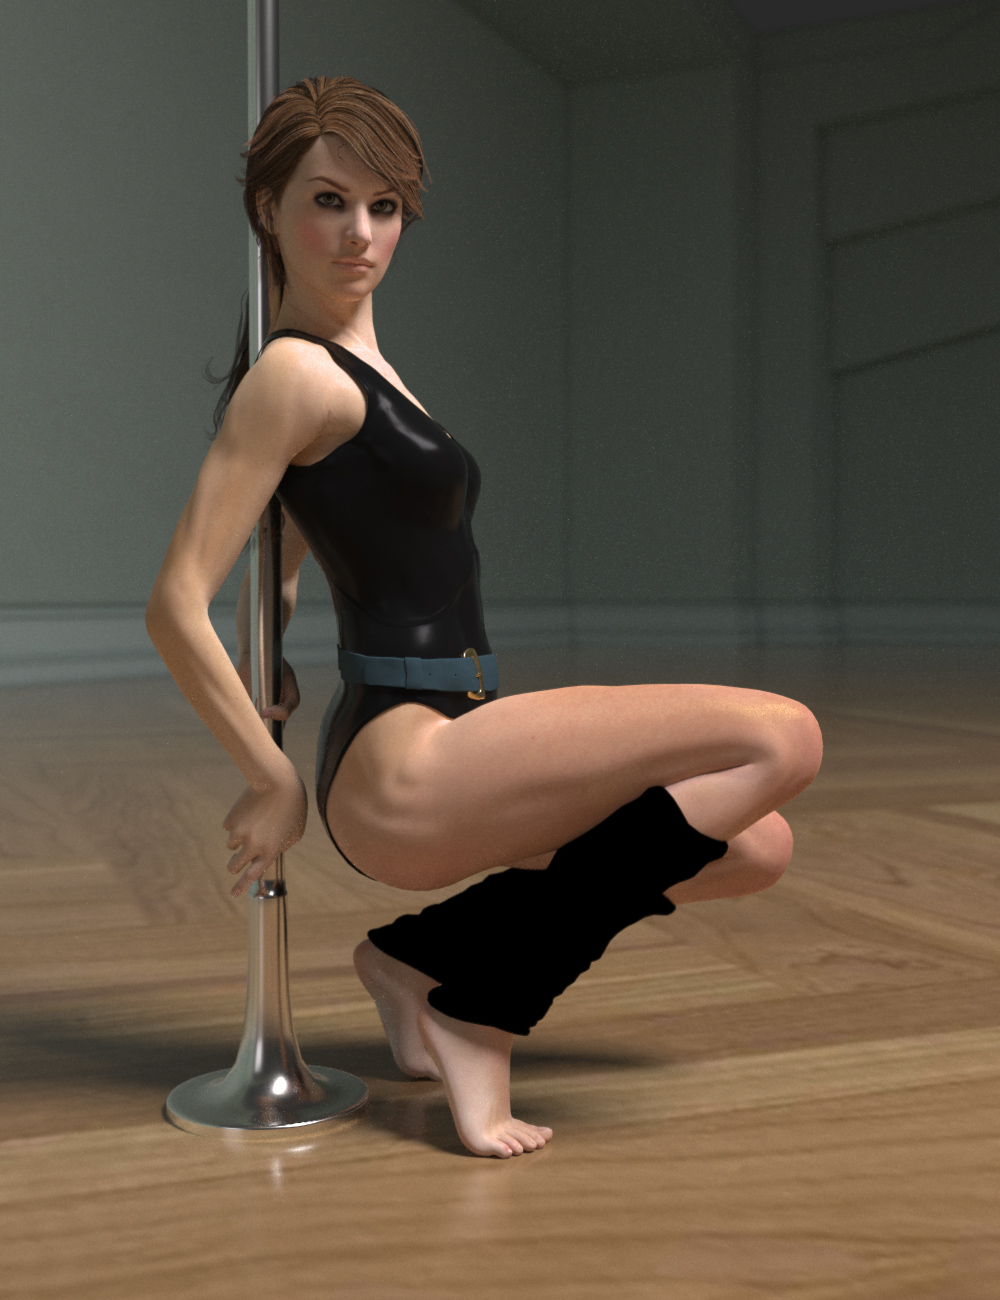 Fitness Pole Dance Poses and Prop for Genesis 2 Female(s) by: Cake One, 3D Models by Daz 3D